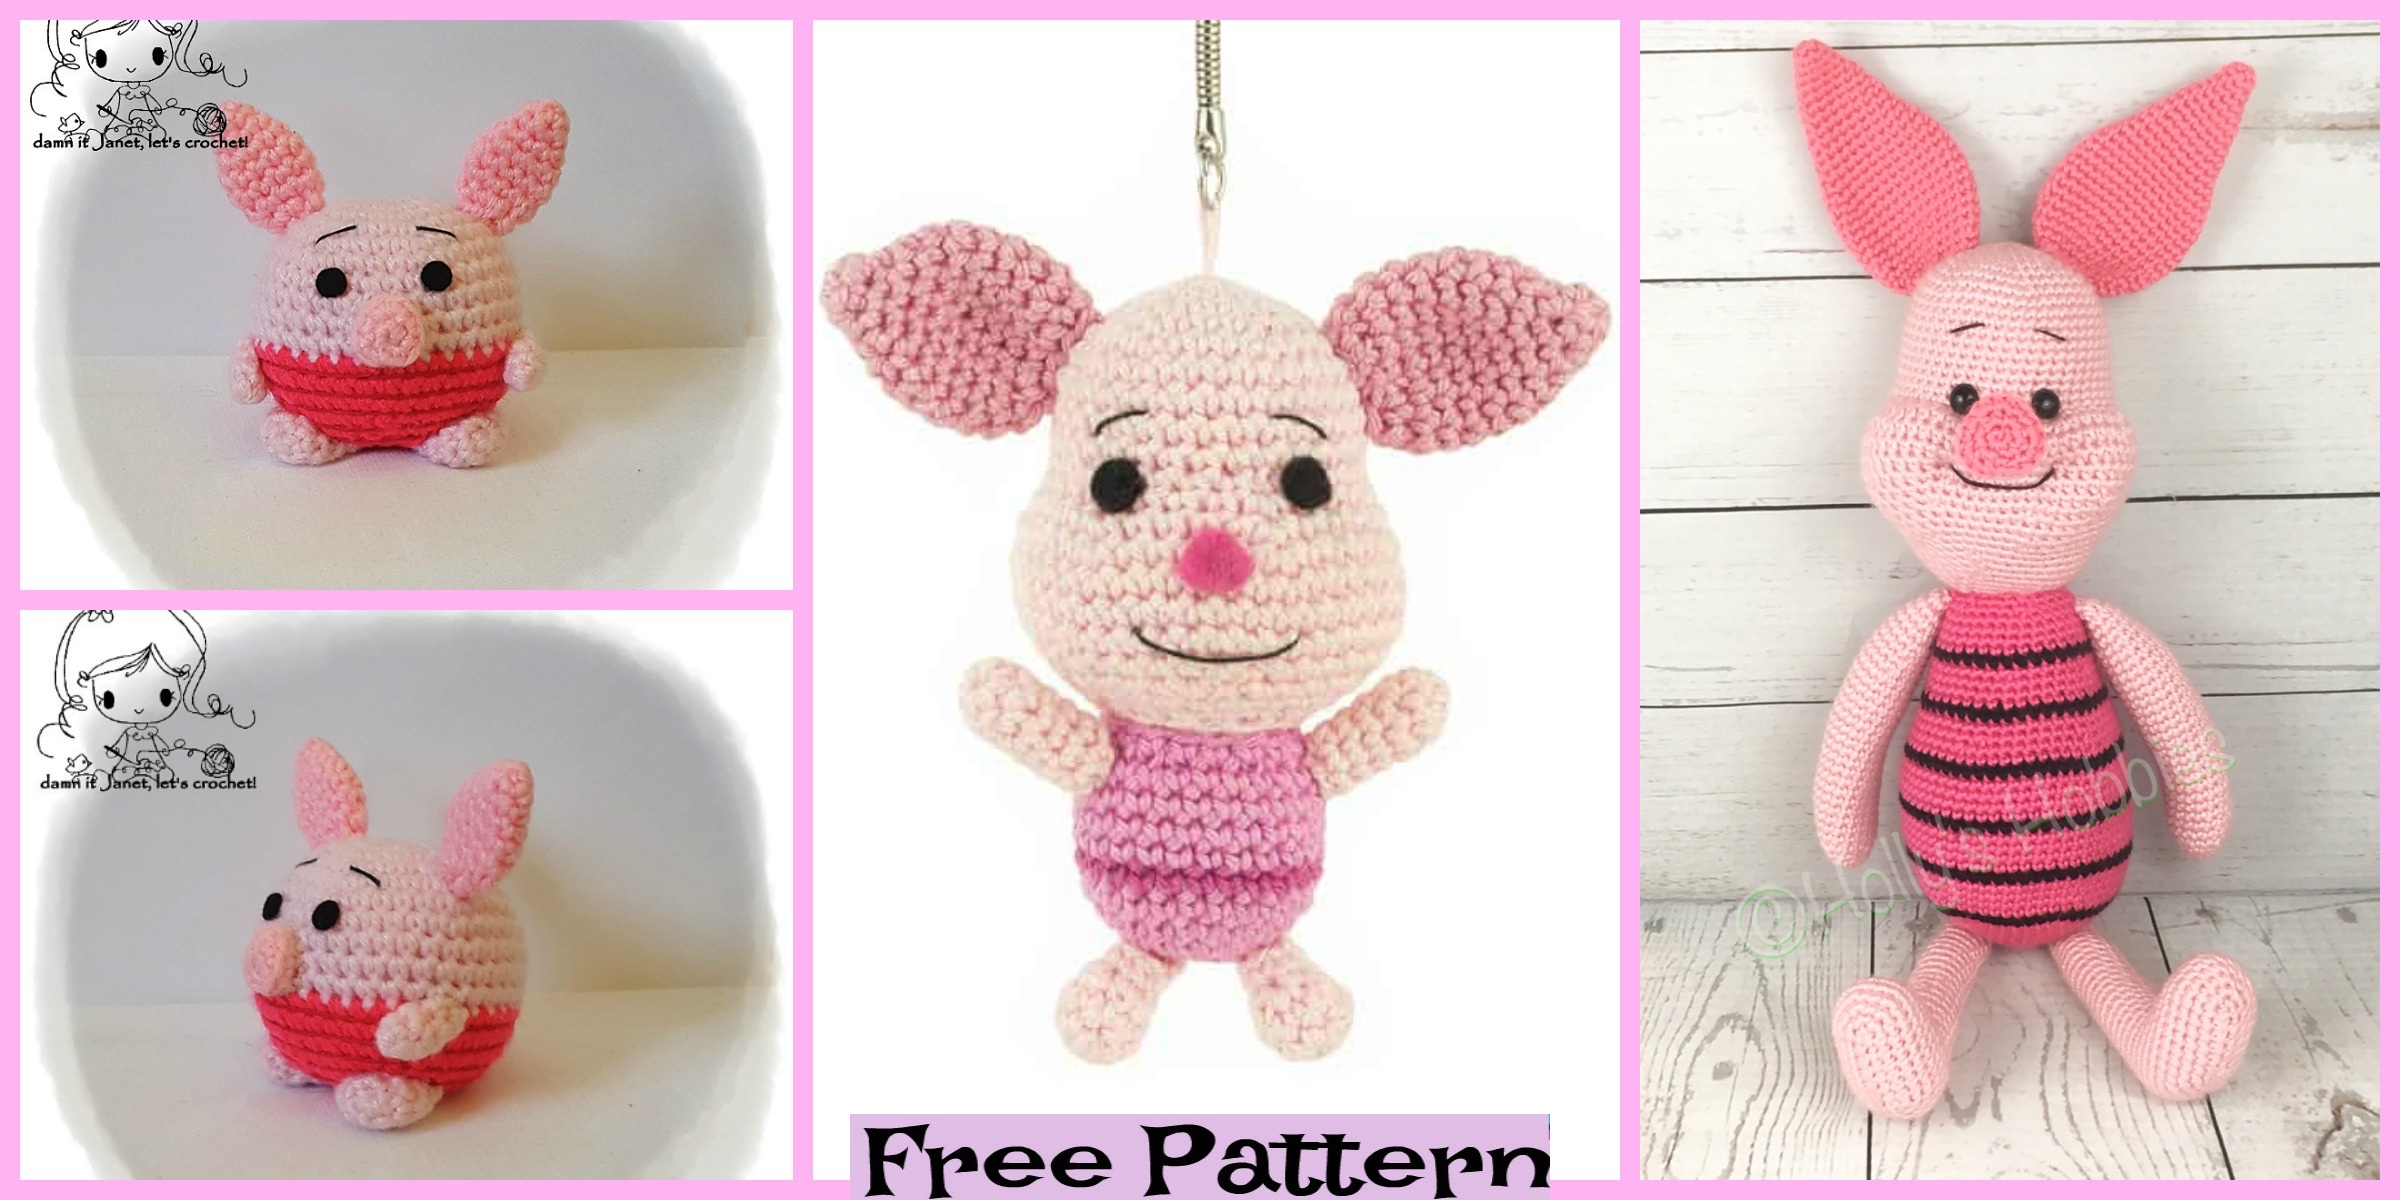 Adorable Crochet Piglets – Free Patterns